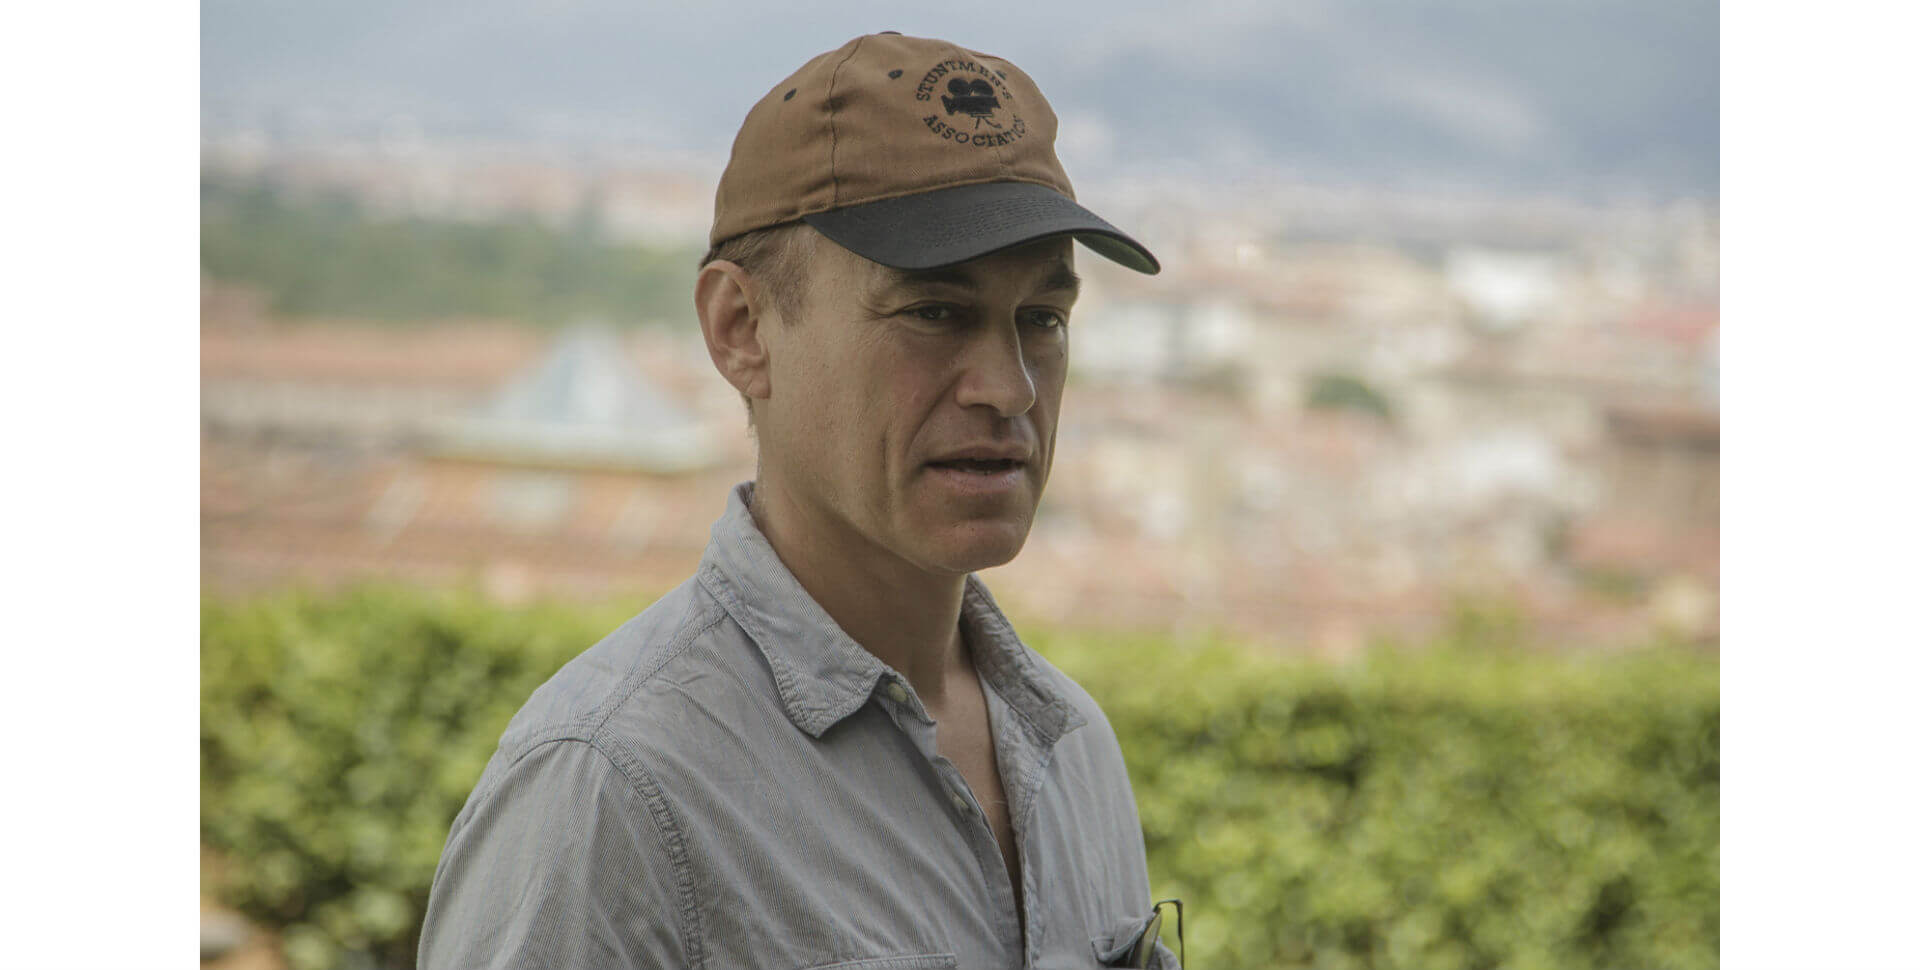 Lost in Florence Interview with Director Evan Oppenheimer